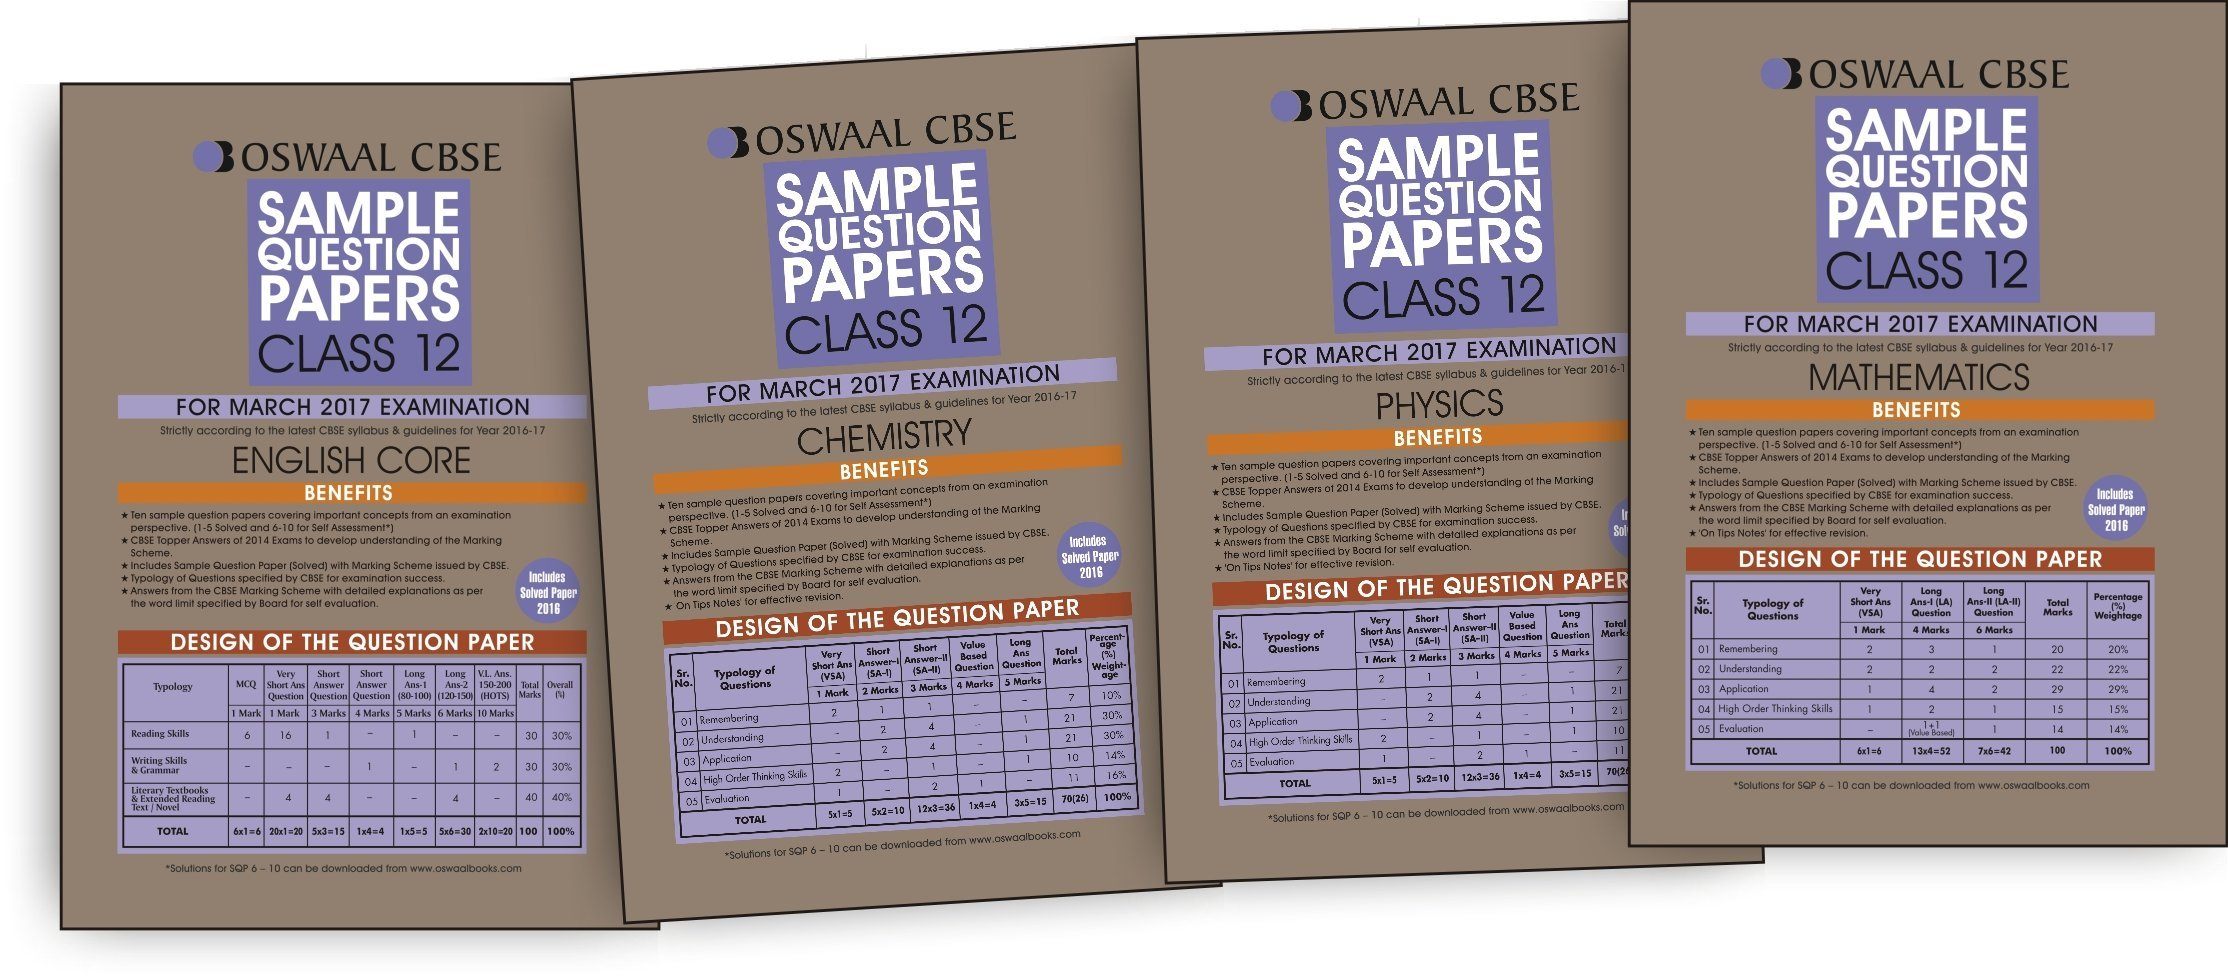 question papers This website provides rtu question papers and solutions different courses like btech mtech mca diploma of rtu university kota rtuonlinecom.